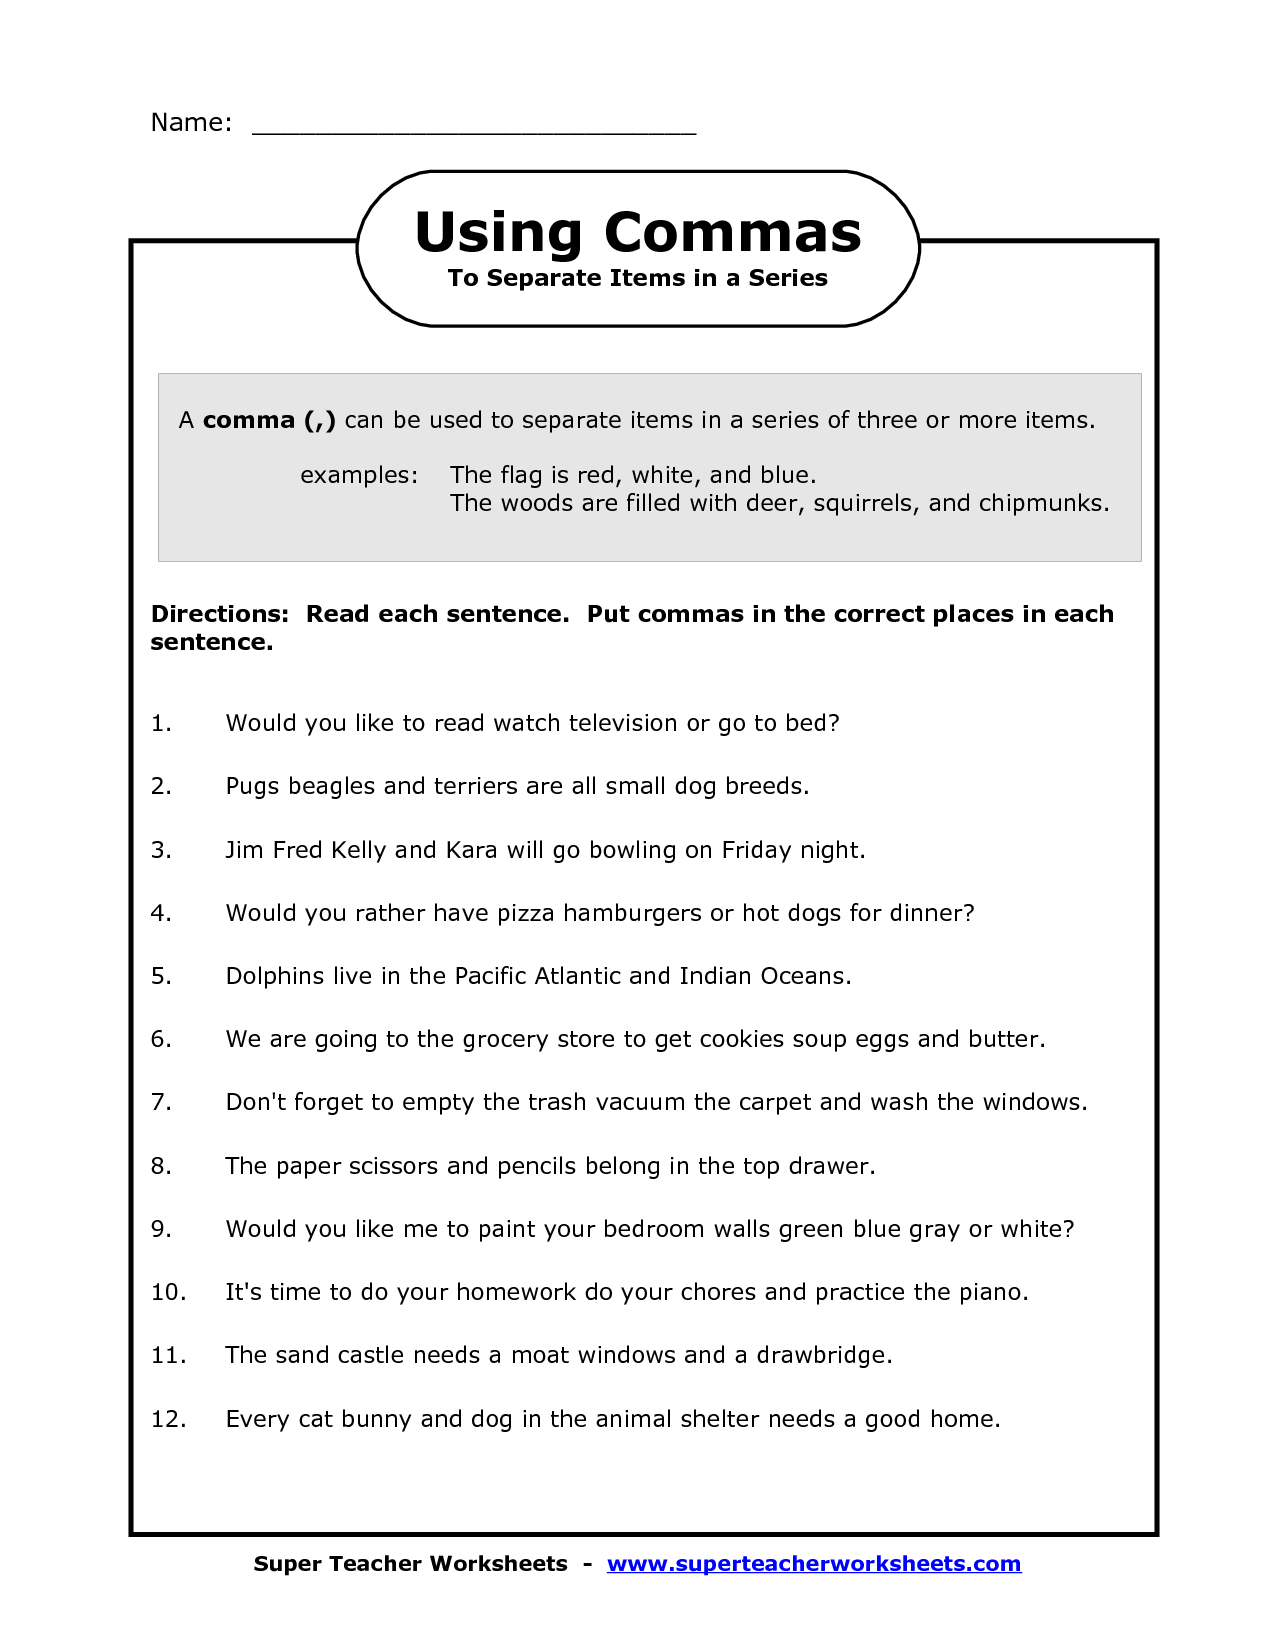 Worksheets Comma Worksheet comma in a series worksheets image commas worksheet worksheet